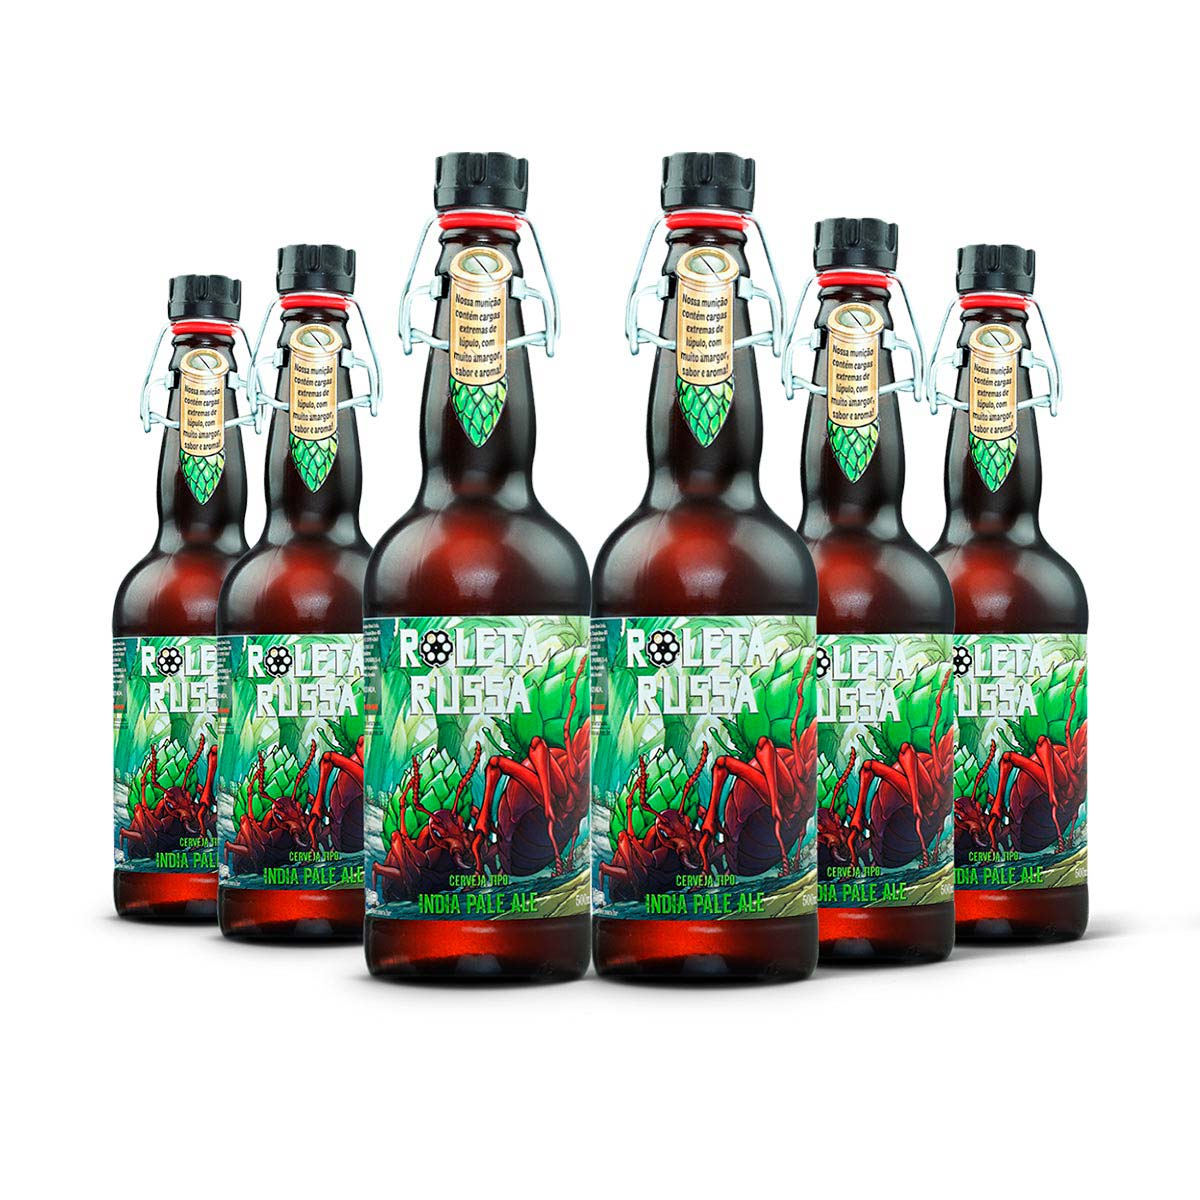 Pack Roleta Russa India Pale Ale IPA 6 cervejas 500ml